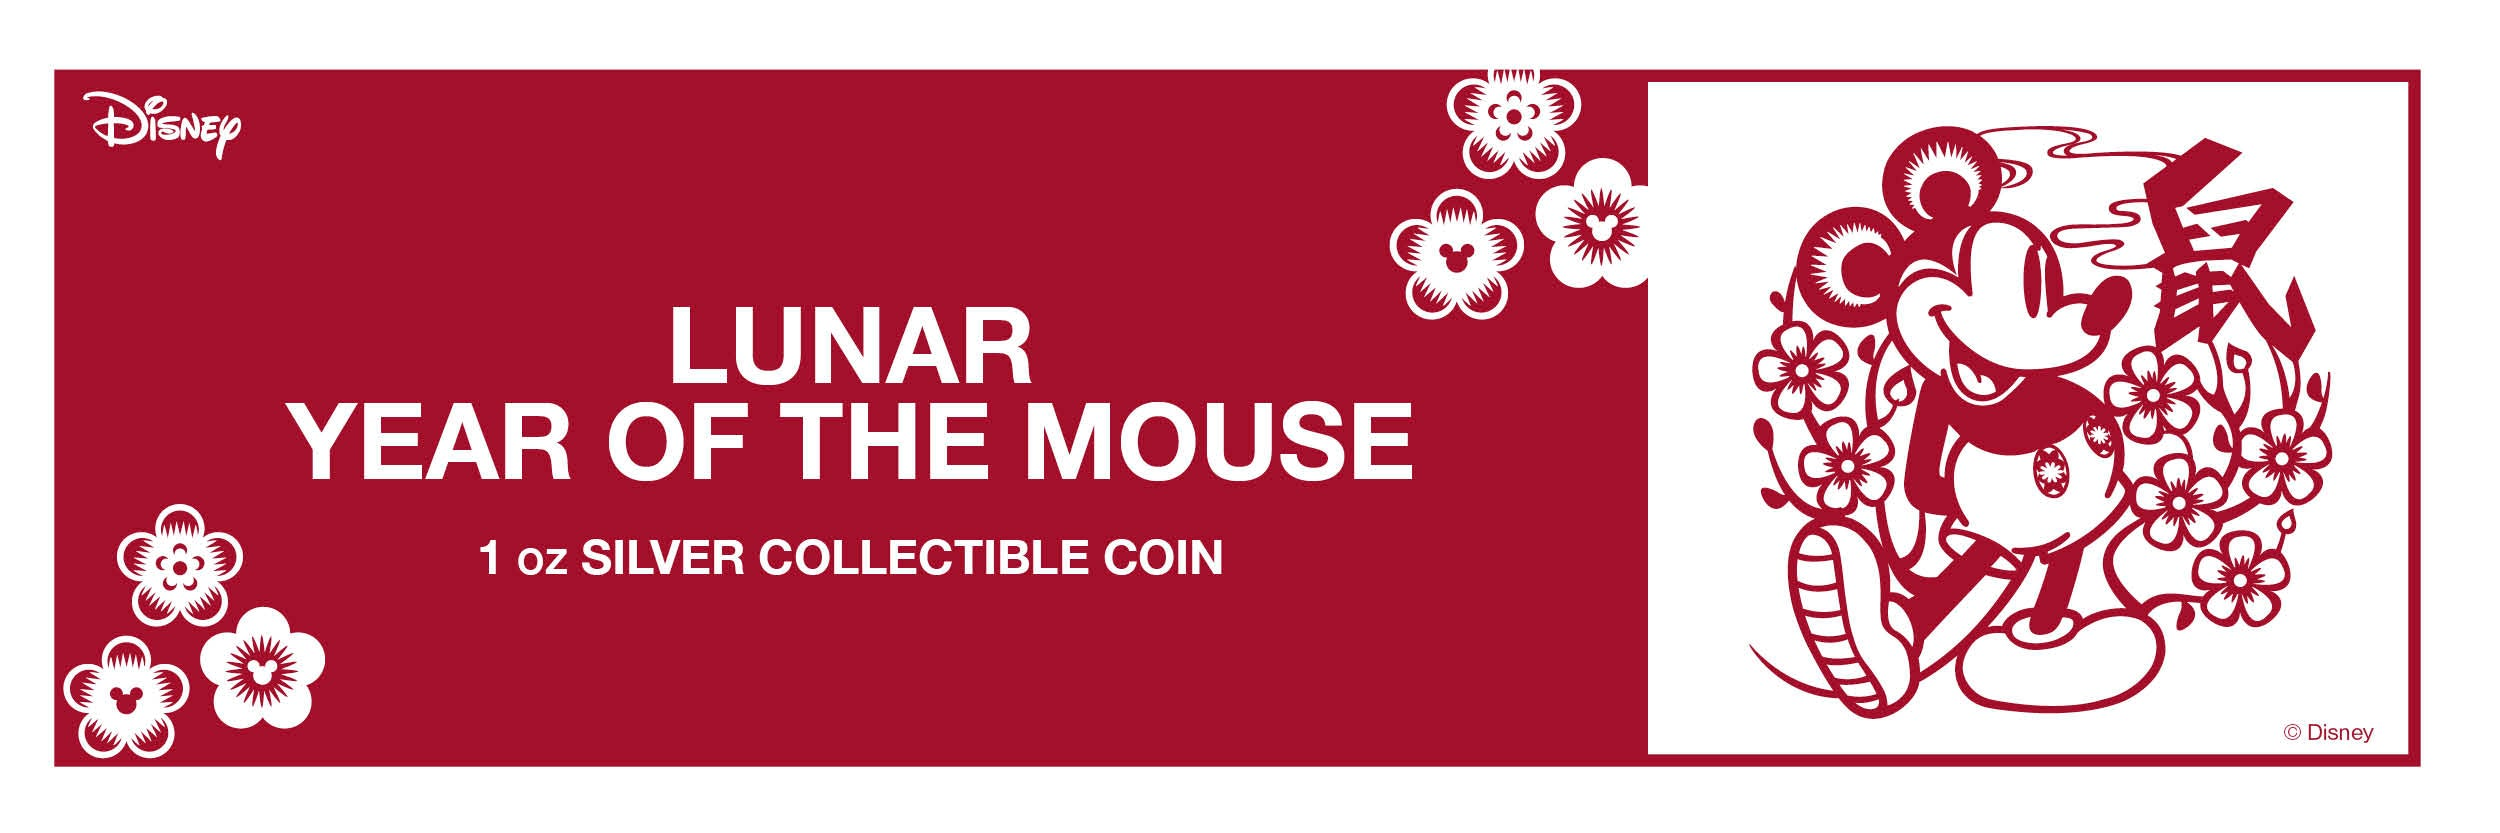 Disney Lunar Year of the Mouse 1oz Silver Coin